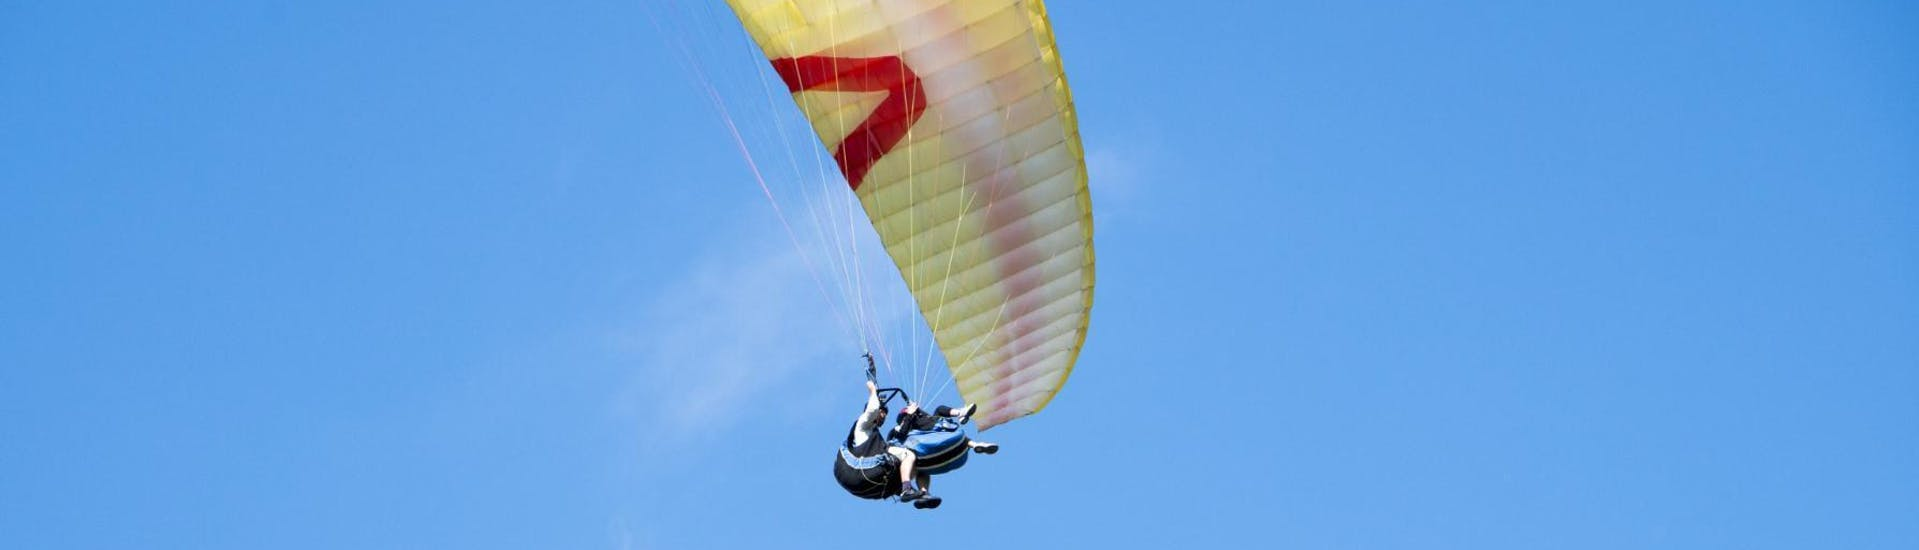 thermic-tandem-paragliding-in-plitvice-lakes-national-park-sky-riders-paragliding-croatia-hero